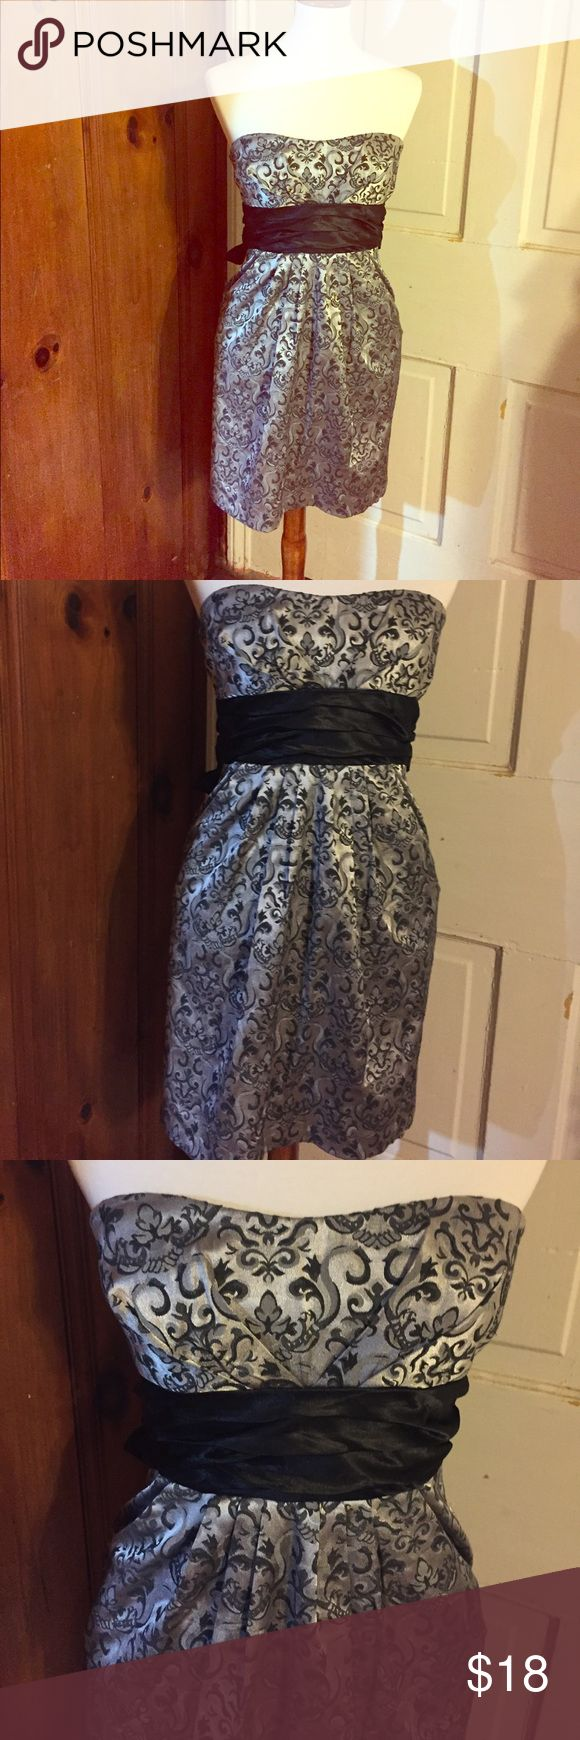 Gorgeous Homecoming Dress! Juniors size 7 Perfect little dress for homecoming dances, parades, etc. or just for a fancy date night. This speechless dress is juniors size 7 (would be misses size 4 or possibly 6) Strapless with a beautiful black back tie. Complimentary shades of gray and black will make your evening special. Speechless Dresses Prom